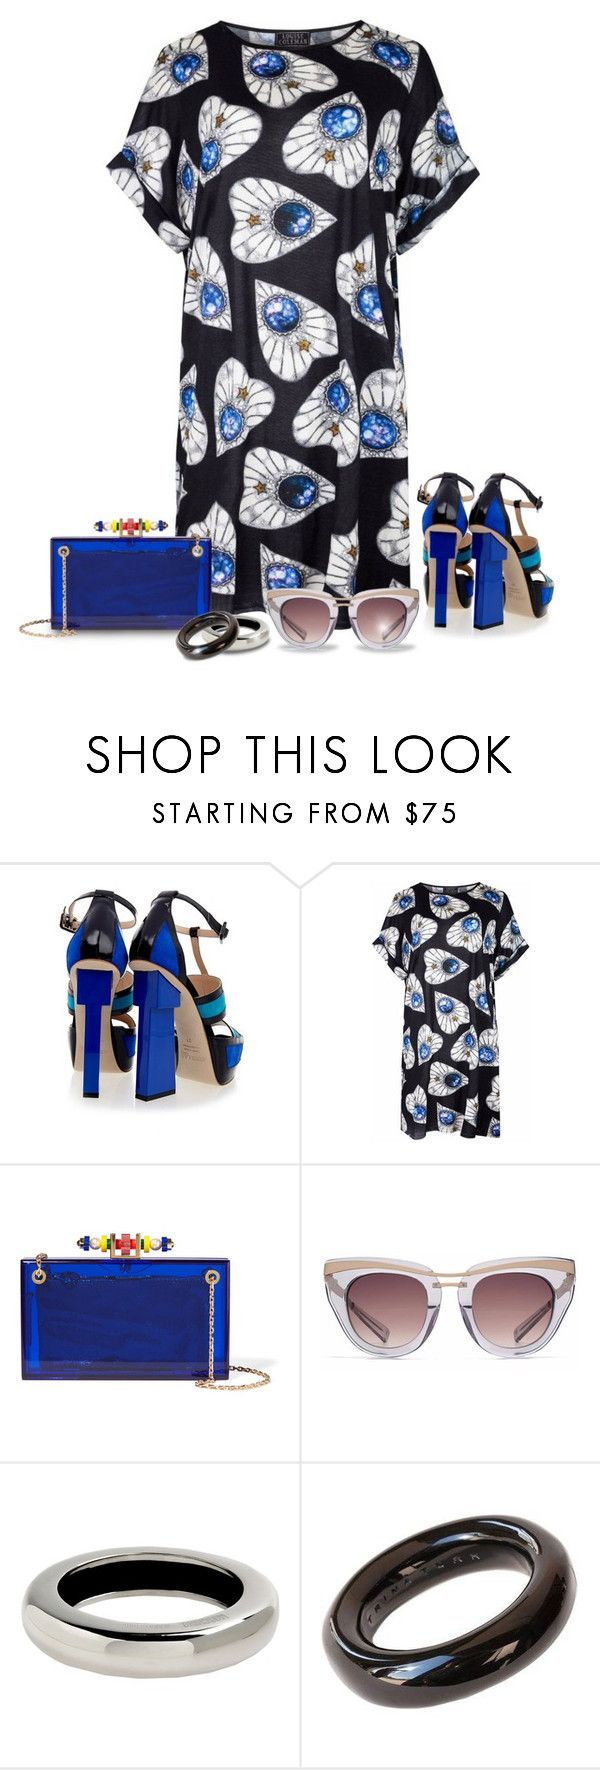 """""""Sapphire"""" by ladychatterley ❤ liked on Polyvore featuring Aperlaï, Louise Coleman, Charlotte Olympia, HOOK LDN, Moschino, Trina Turk, Summer, CharlotteOlympia, summerdress and Aperlai"""